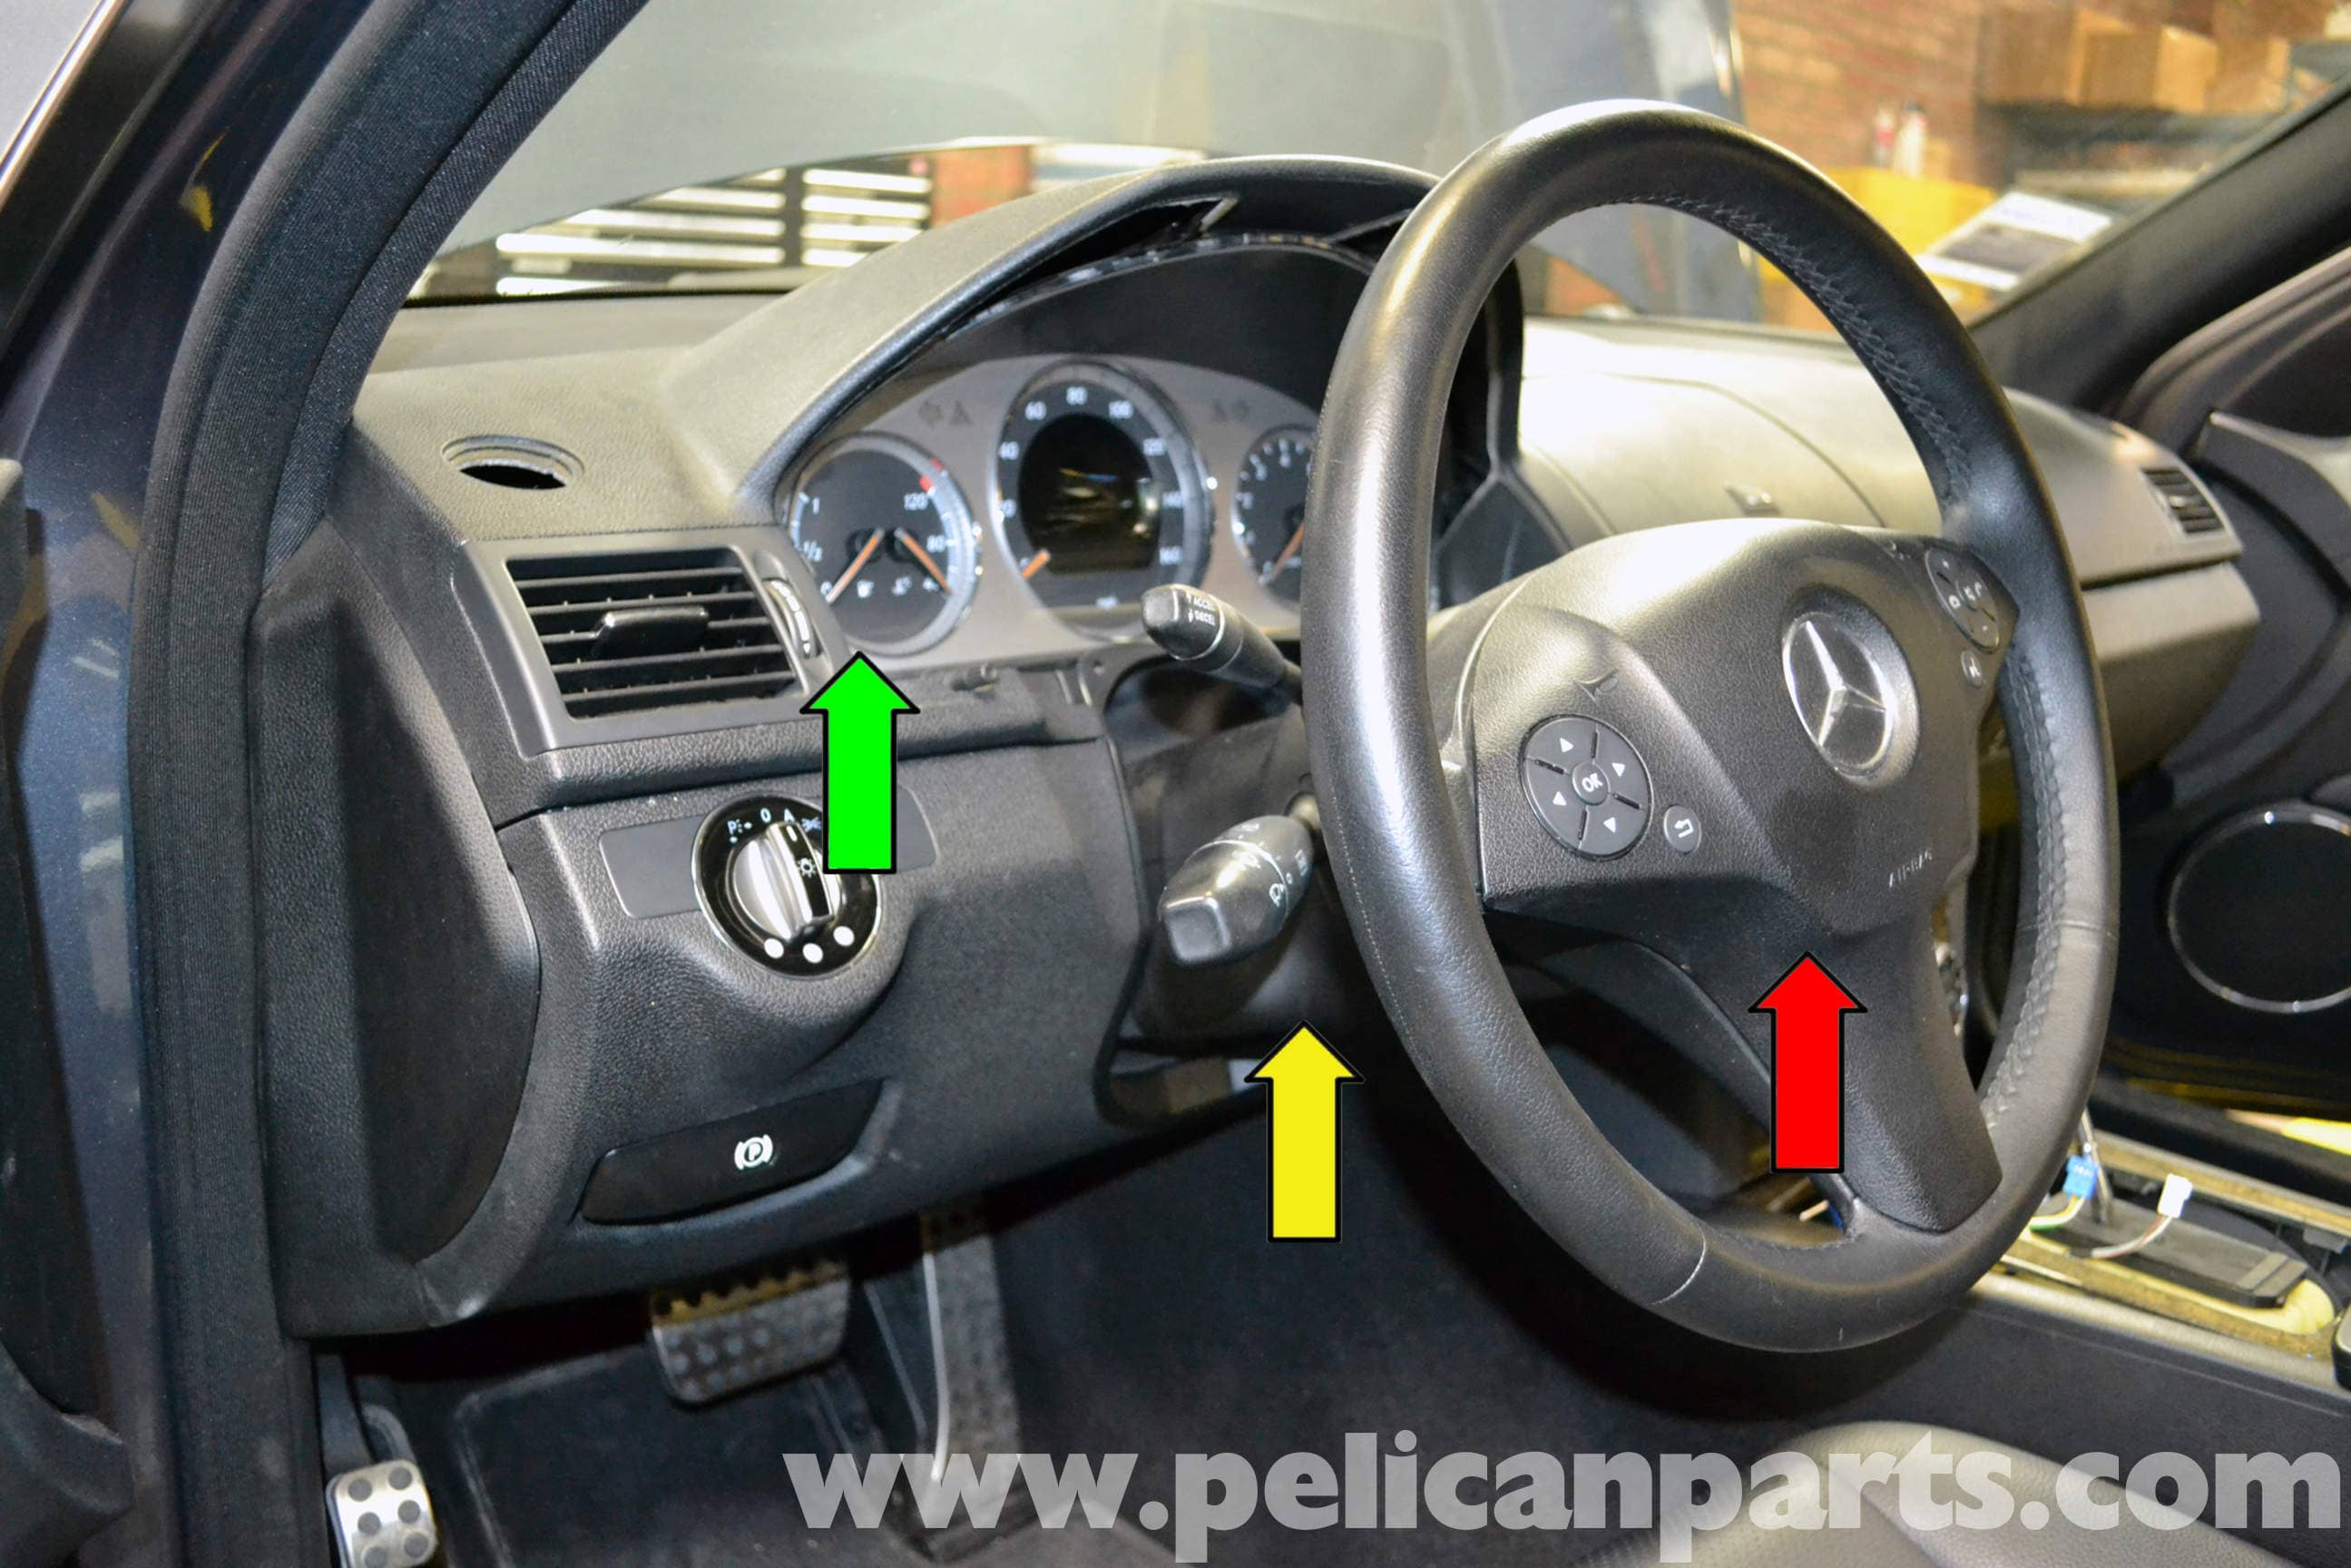 Mercedes-Benz W204 Ignition Switch Replacement - (2008-2014